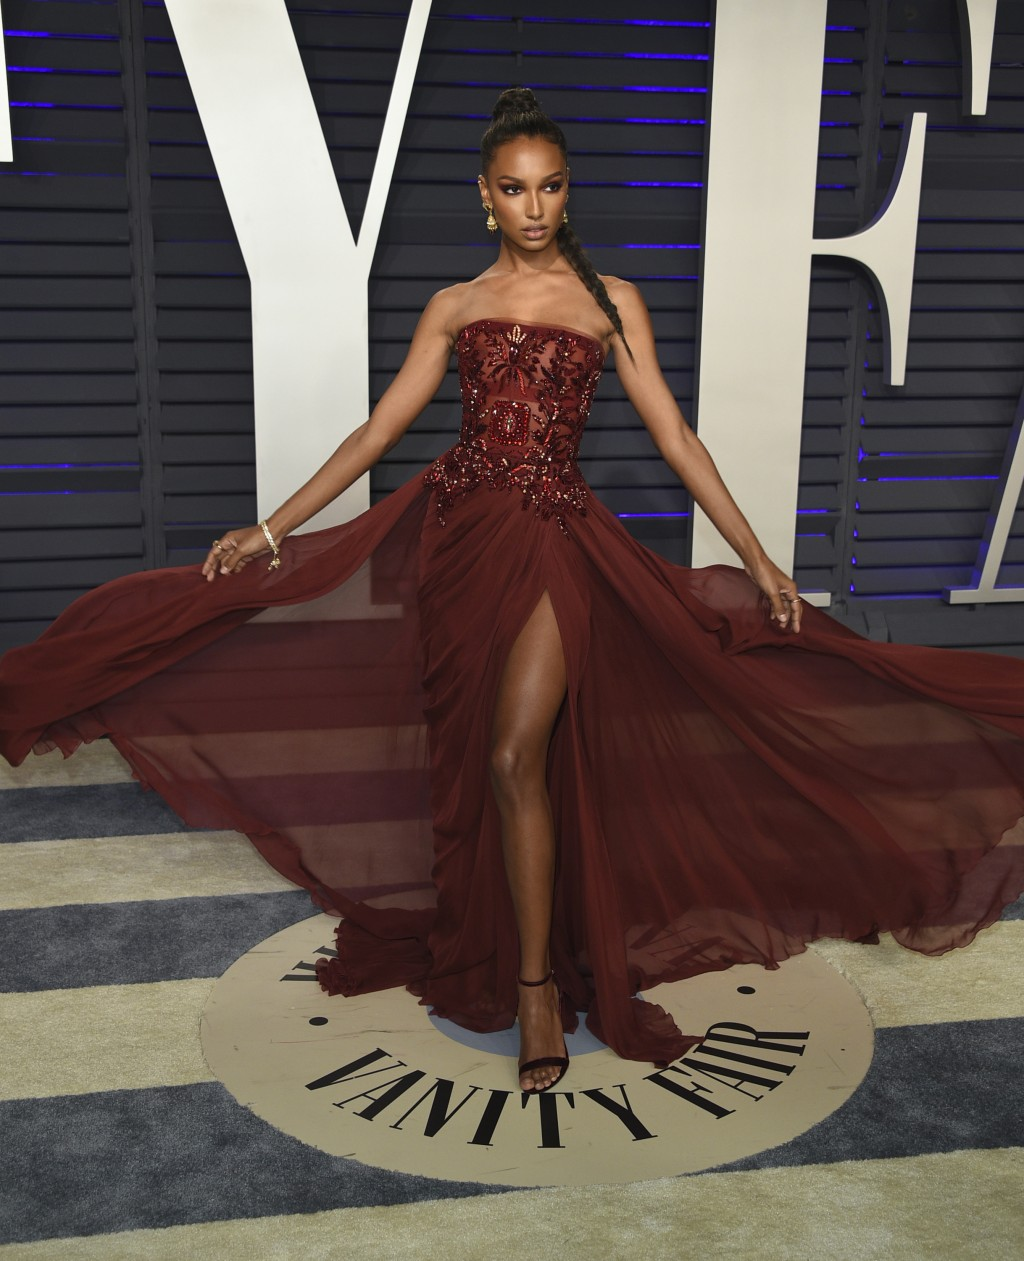 Jasmine Tookes arrives at the Vanity Fair Oscar Party on Sunday, Feb. 24, 2019, in Beverly Hills, Calif. (Photo by Evan Agostini/Invision/AP)